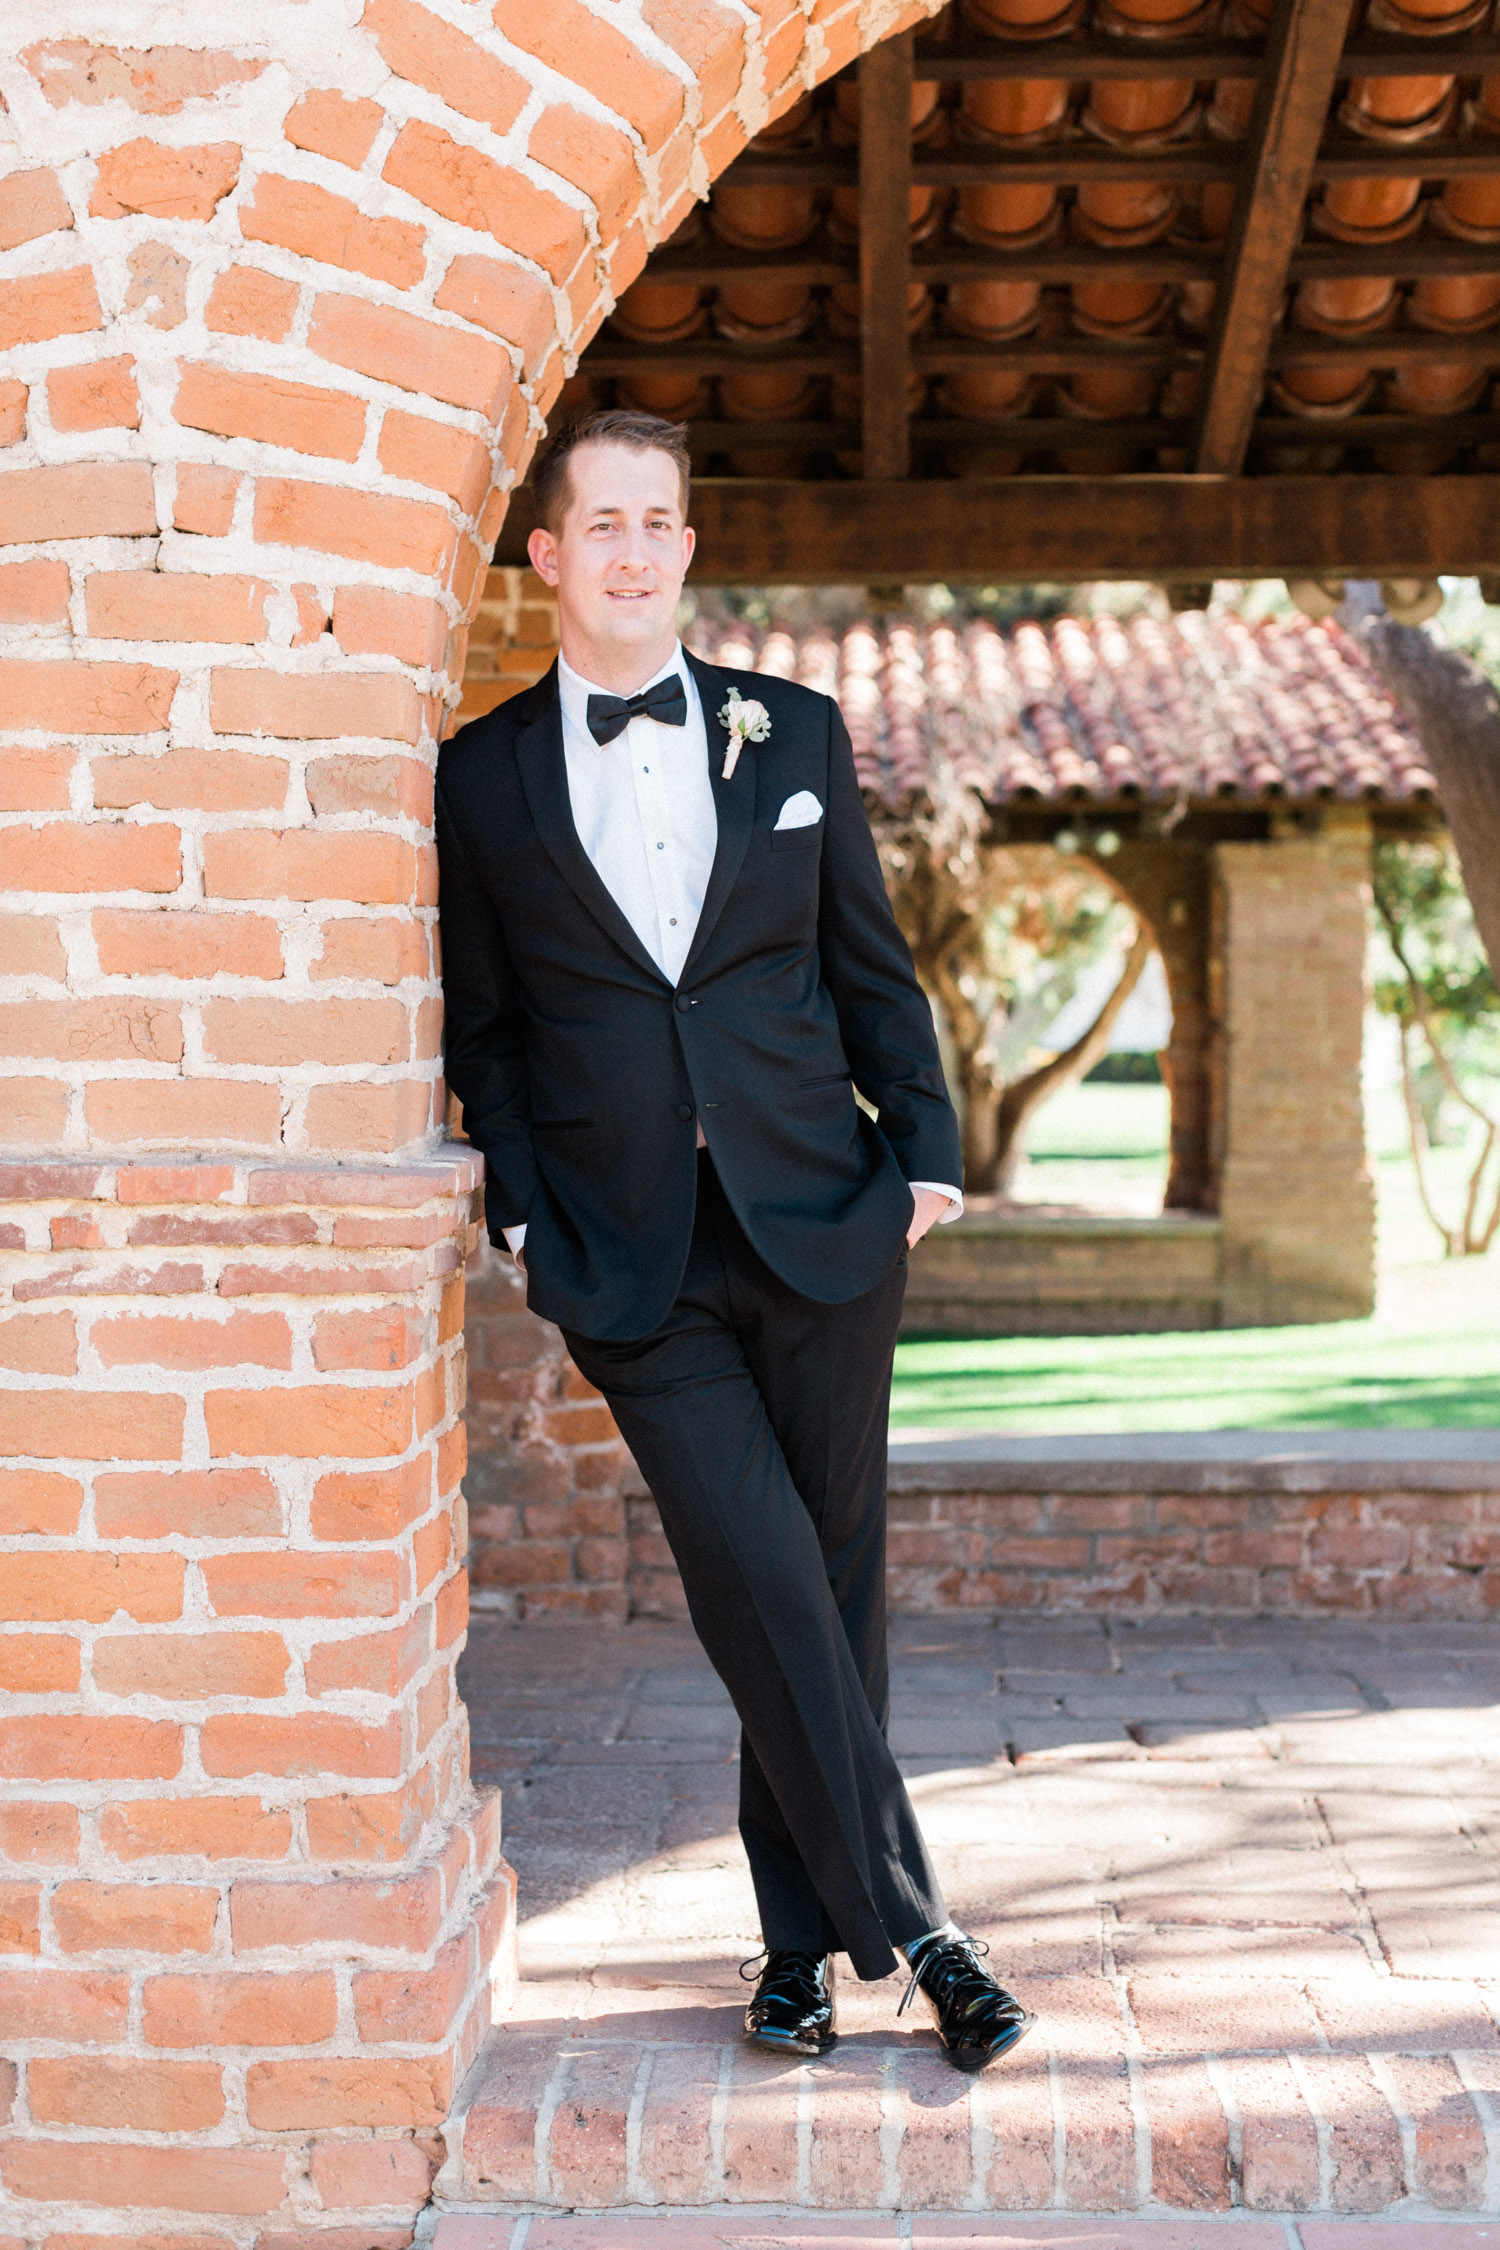 Groom leaning against wall